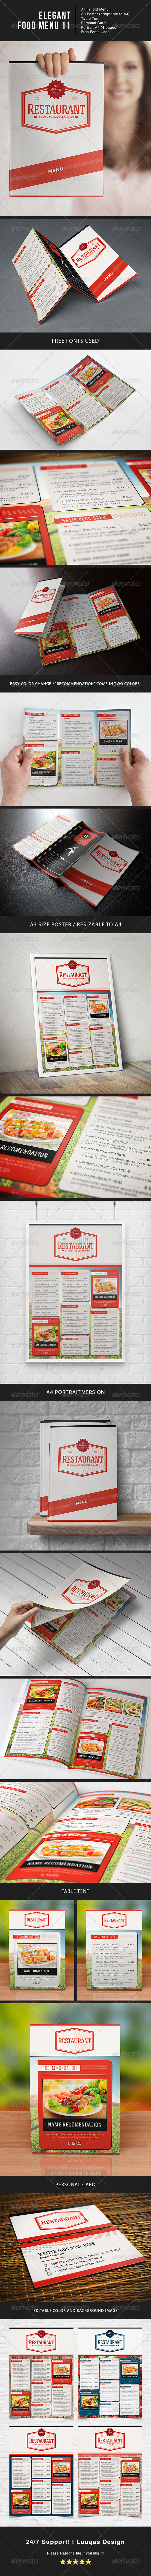 GraphicRiver Elegant Food Menu 11 7640532